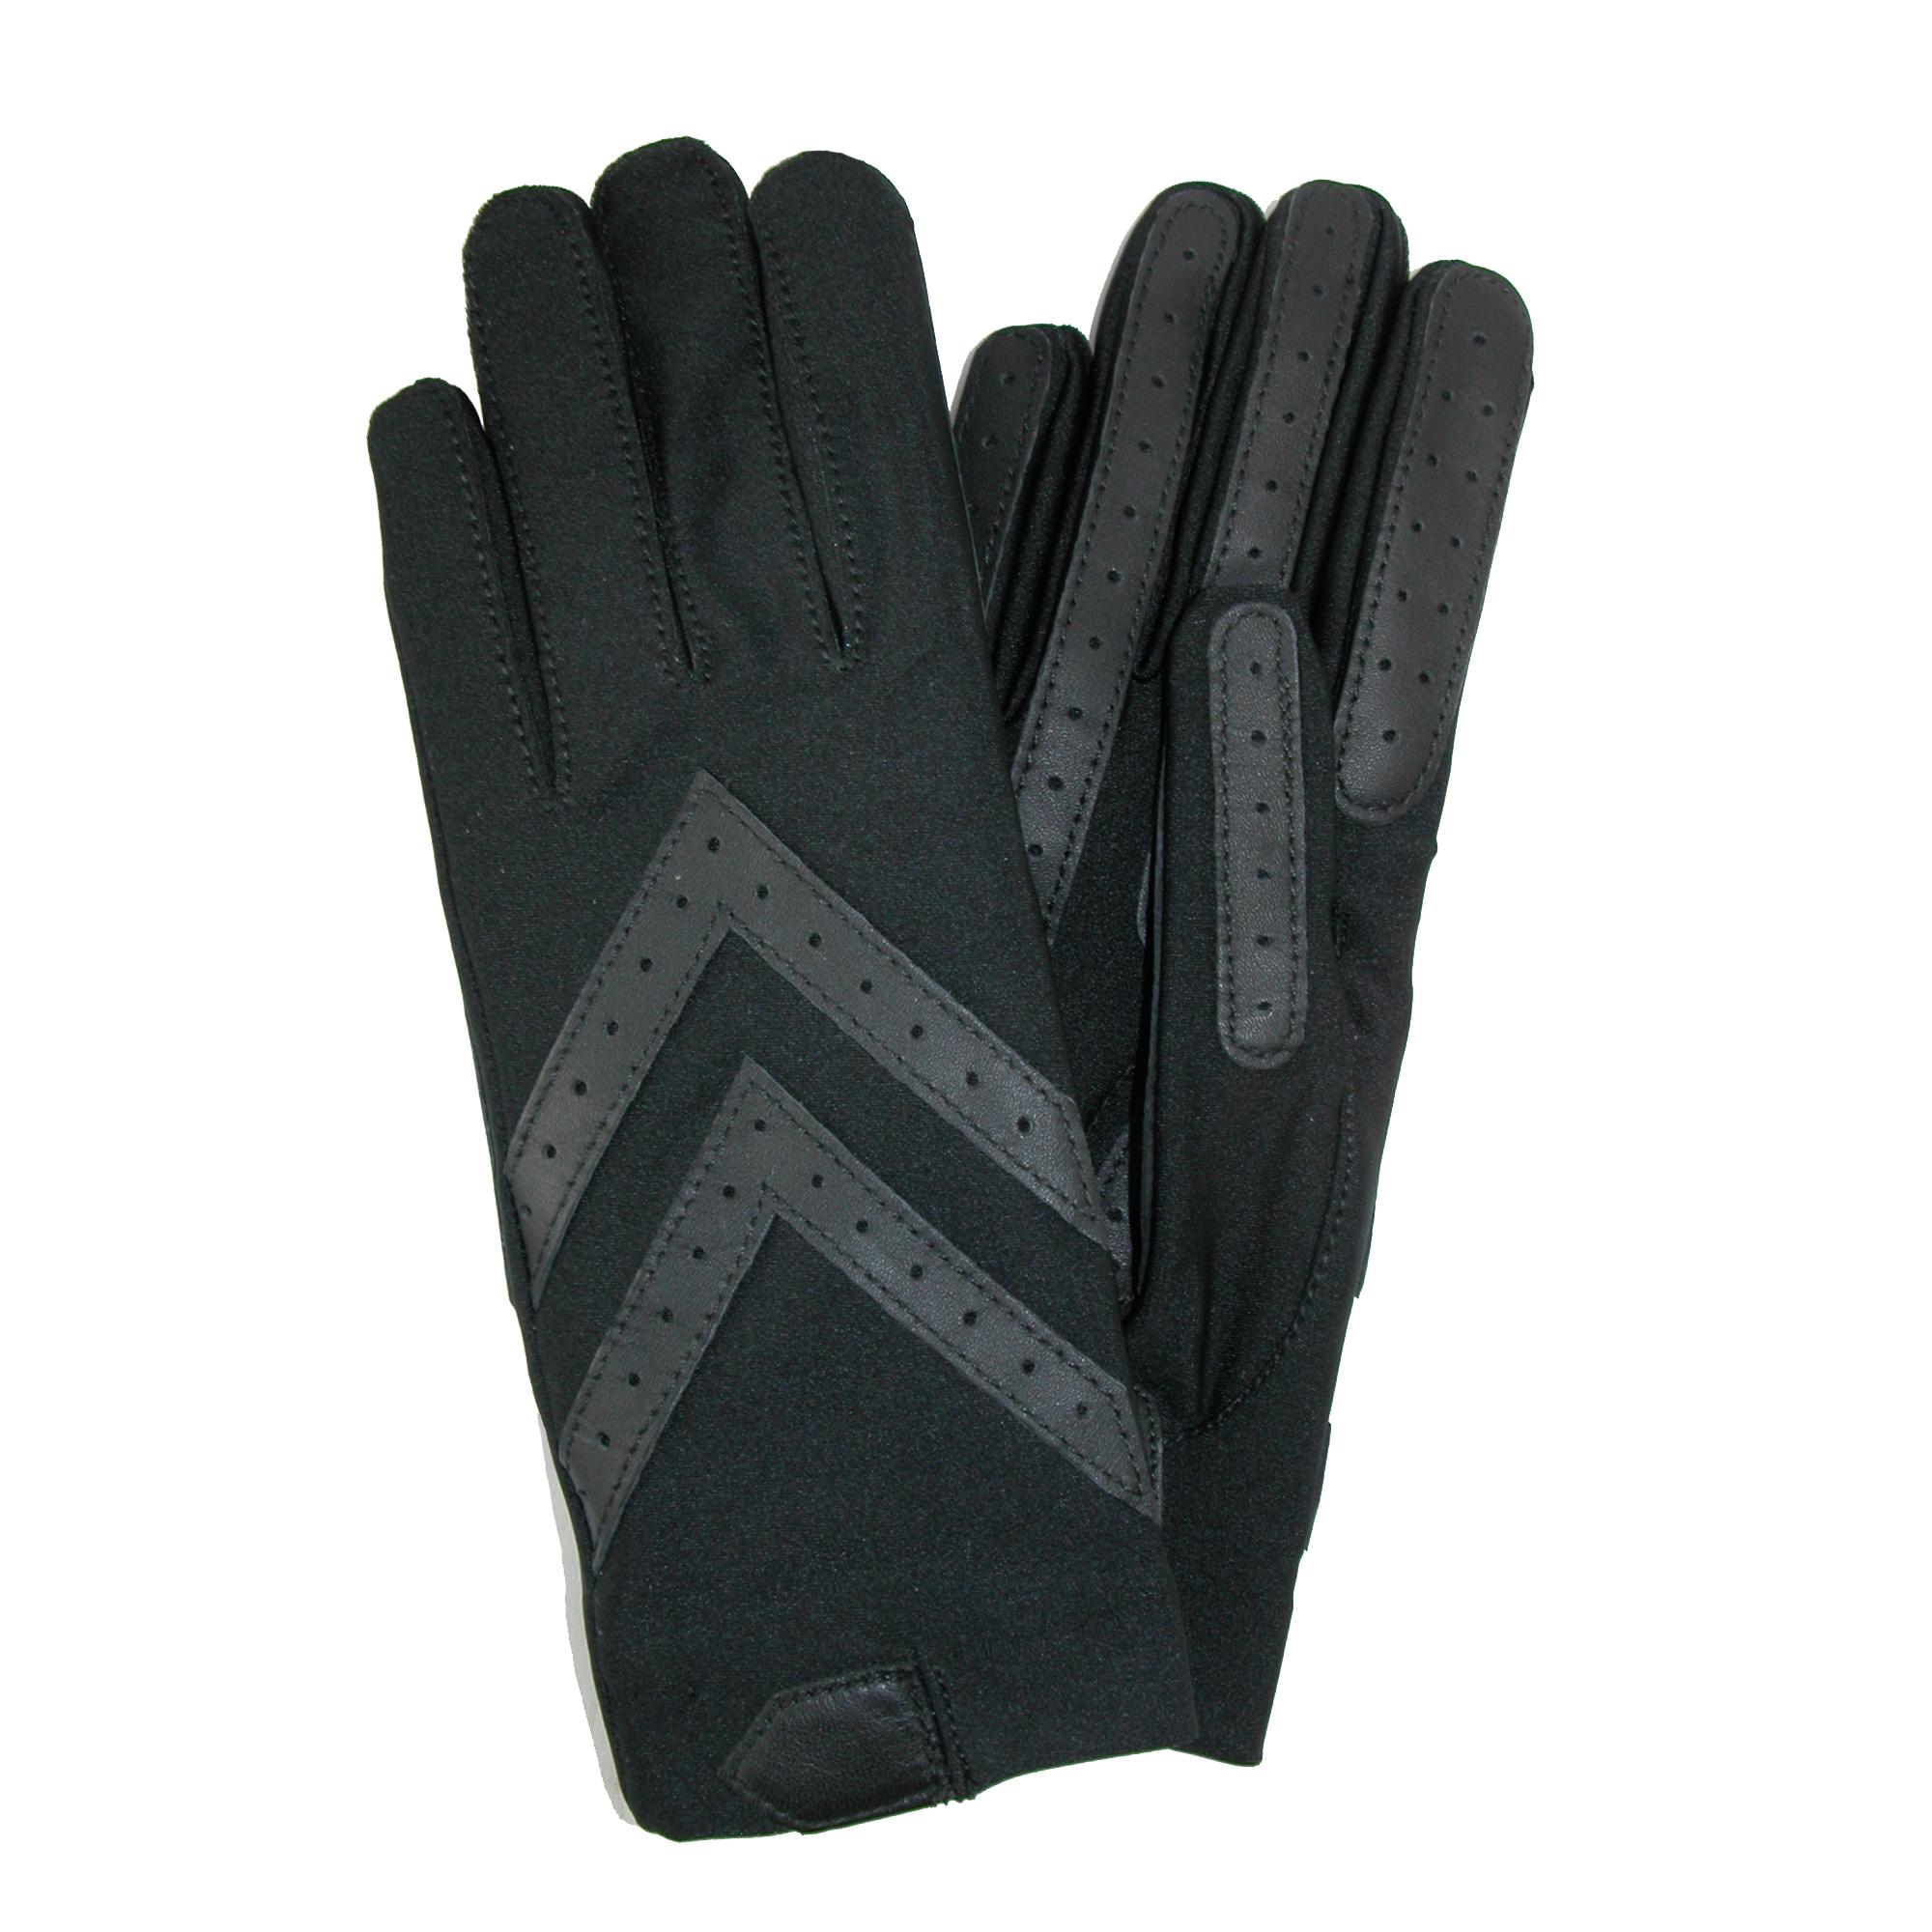 Leather driving gloves on ebay - Picture 5 Of 18